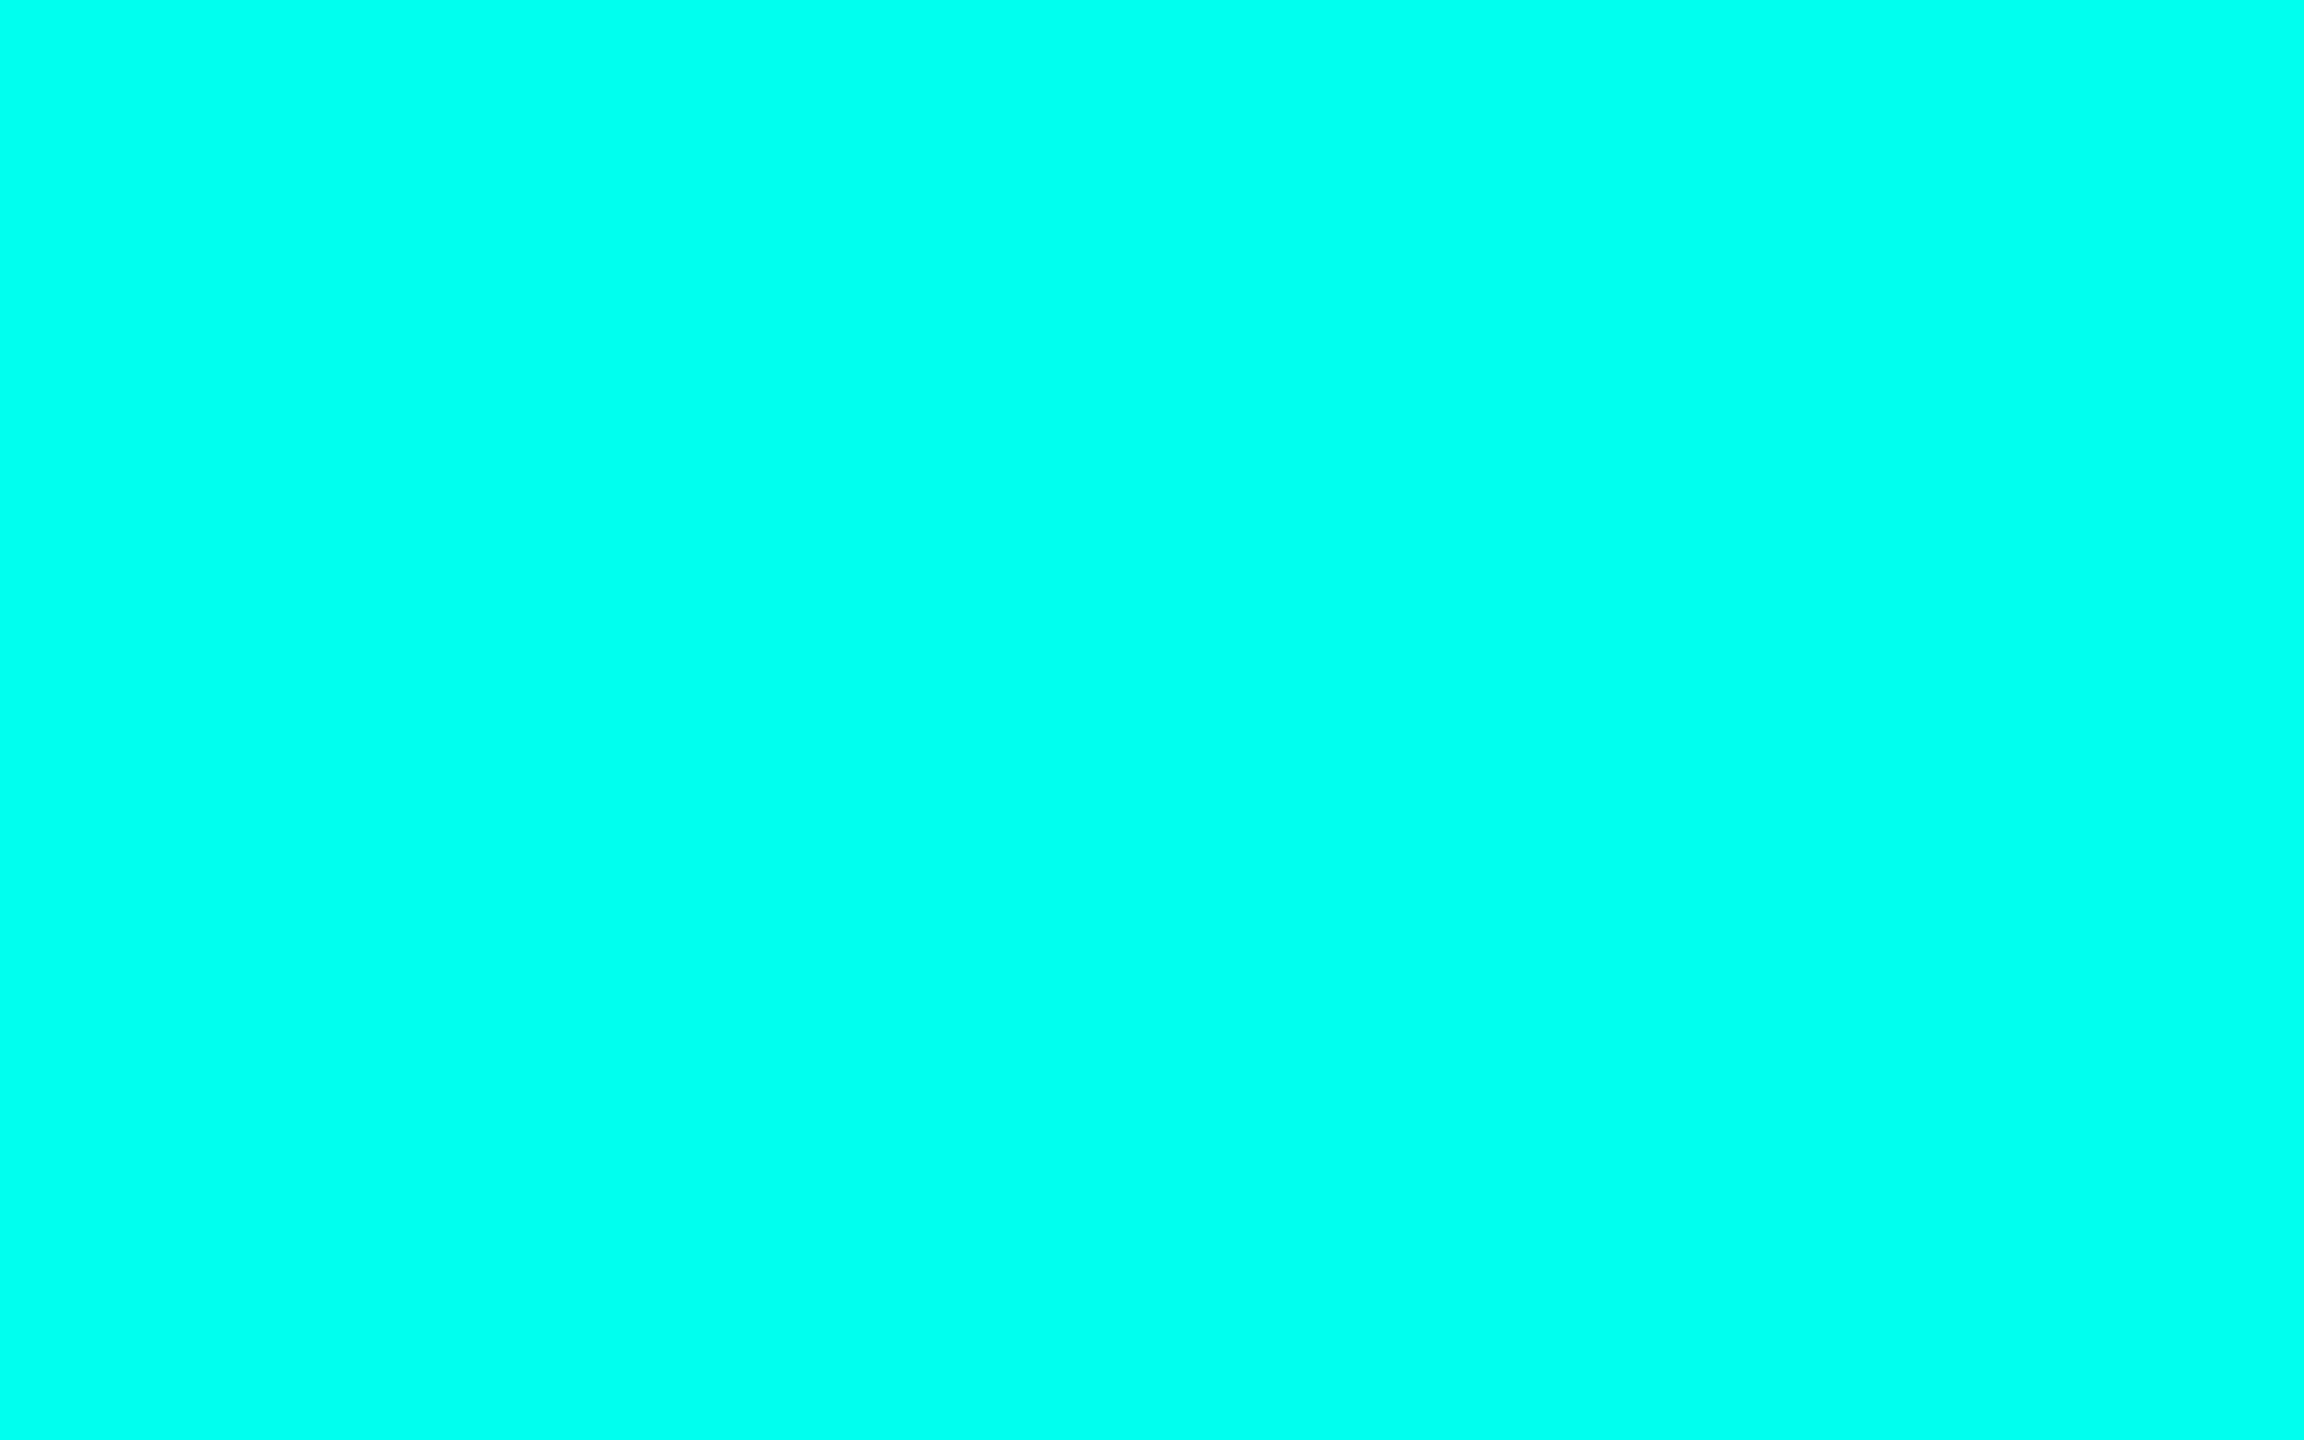 2304x1440 Turquoise Blue Solid Color Background